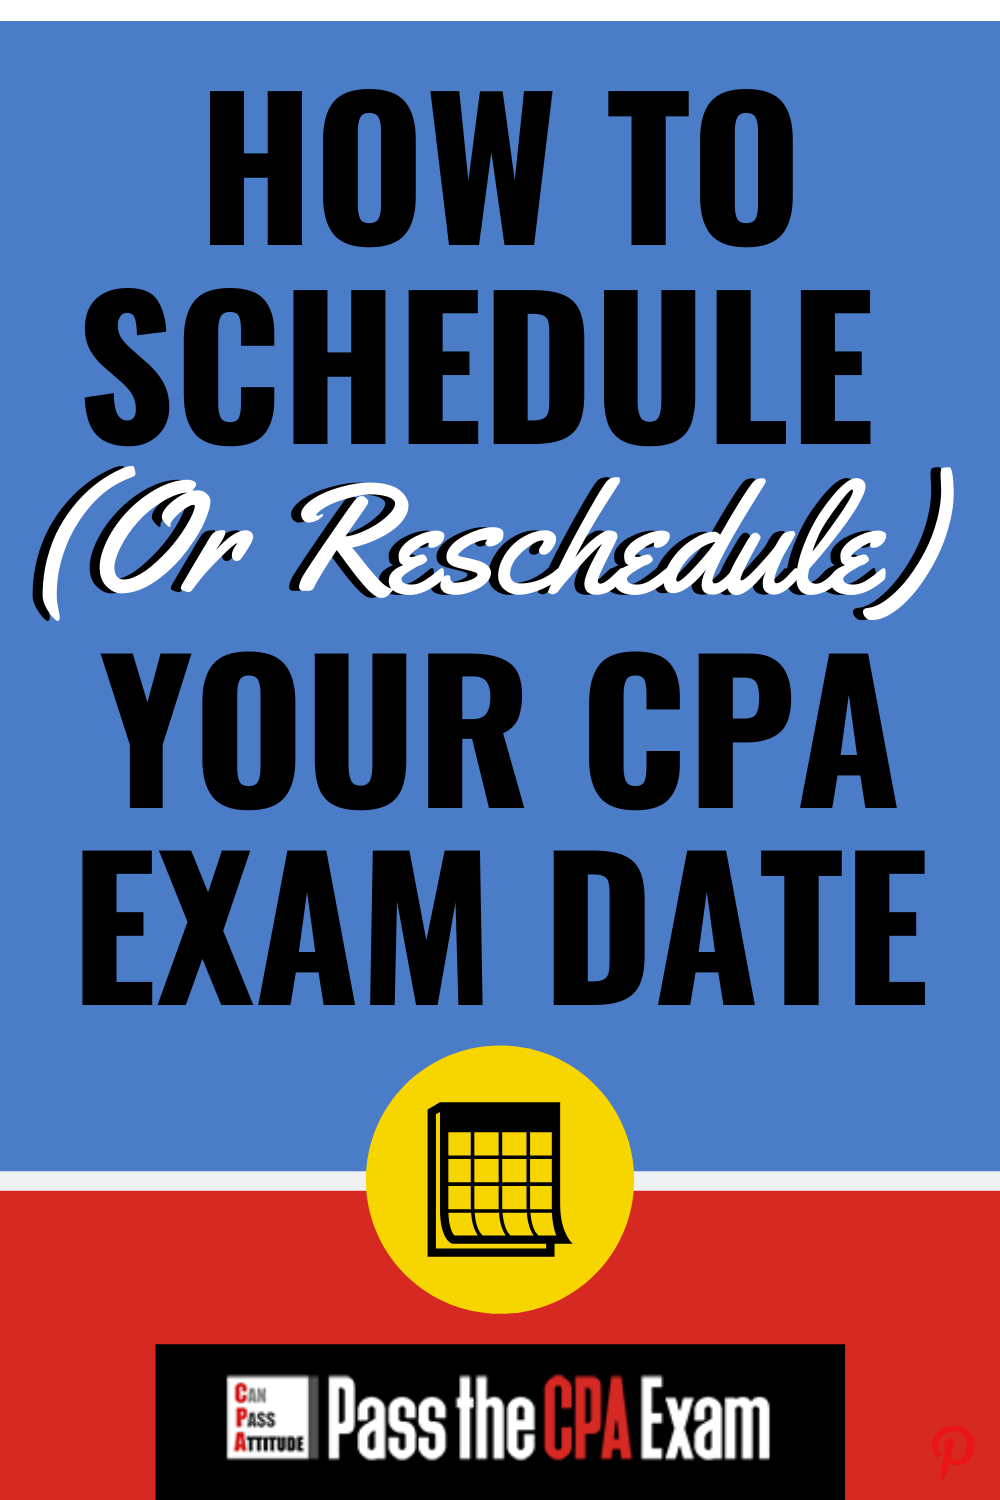 How to Schedule Your CPA Exam Date with Prometric [2020] in 2020 | Cpa exam,  Cpa exam motivation, Exam motivation